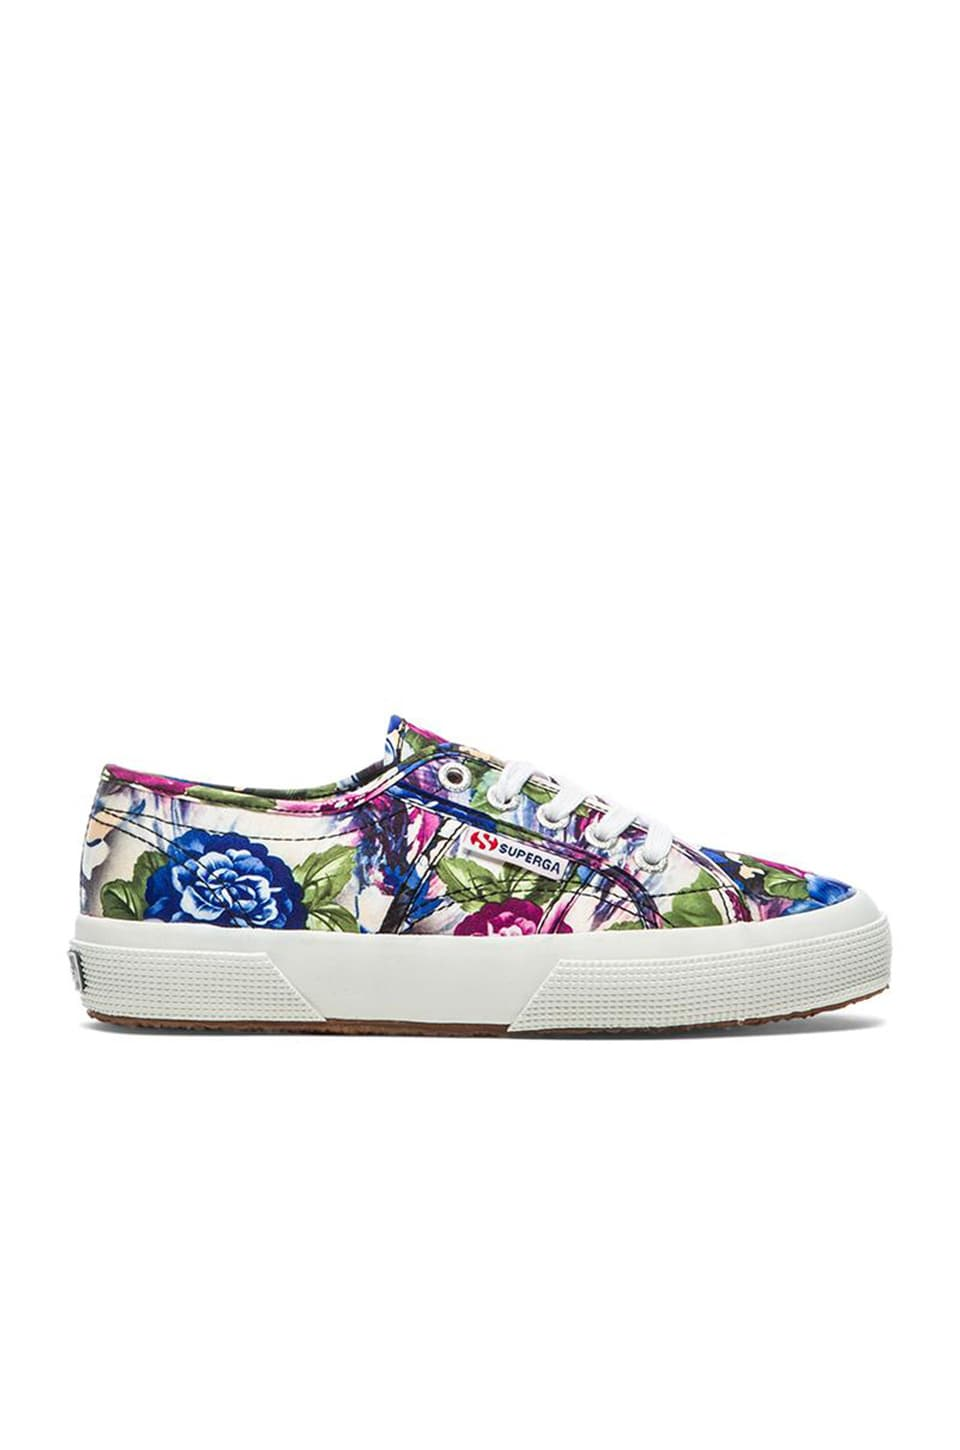 Superga Lace Up Sneaker in Violet Flower Paint